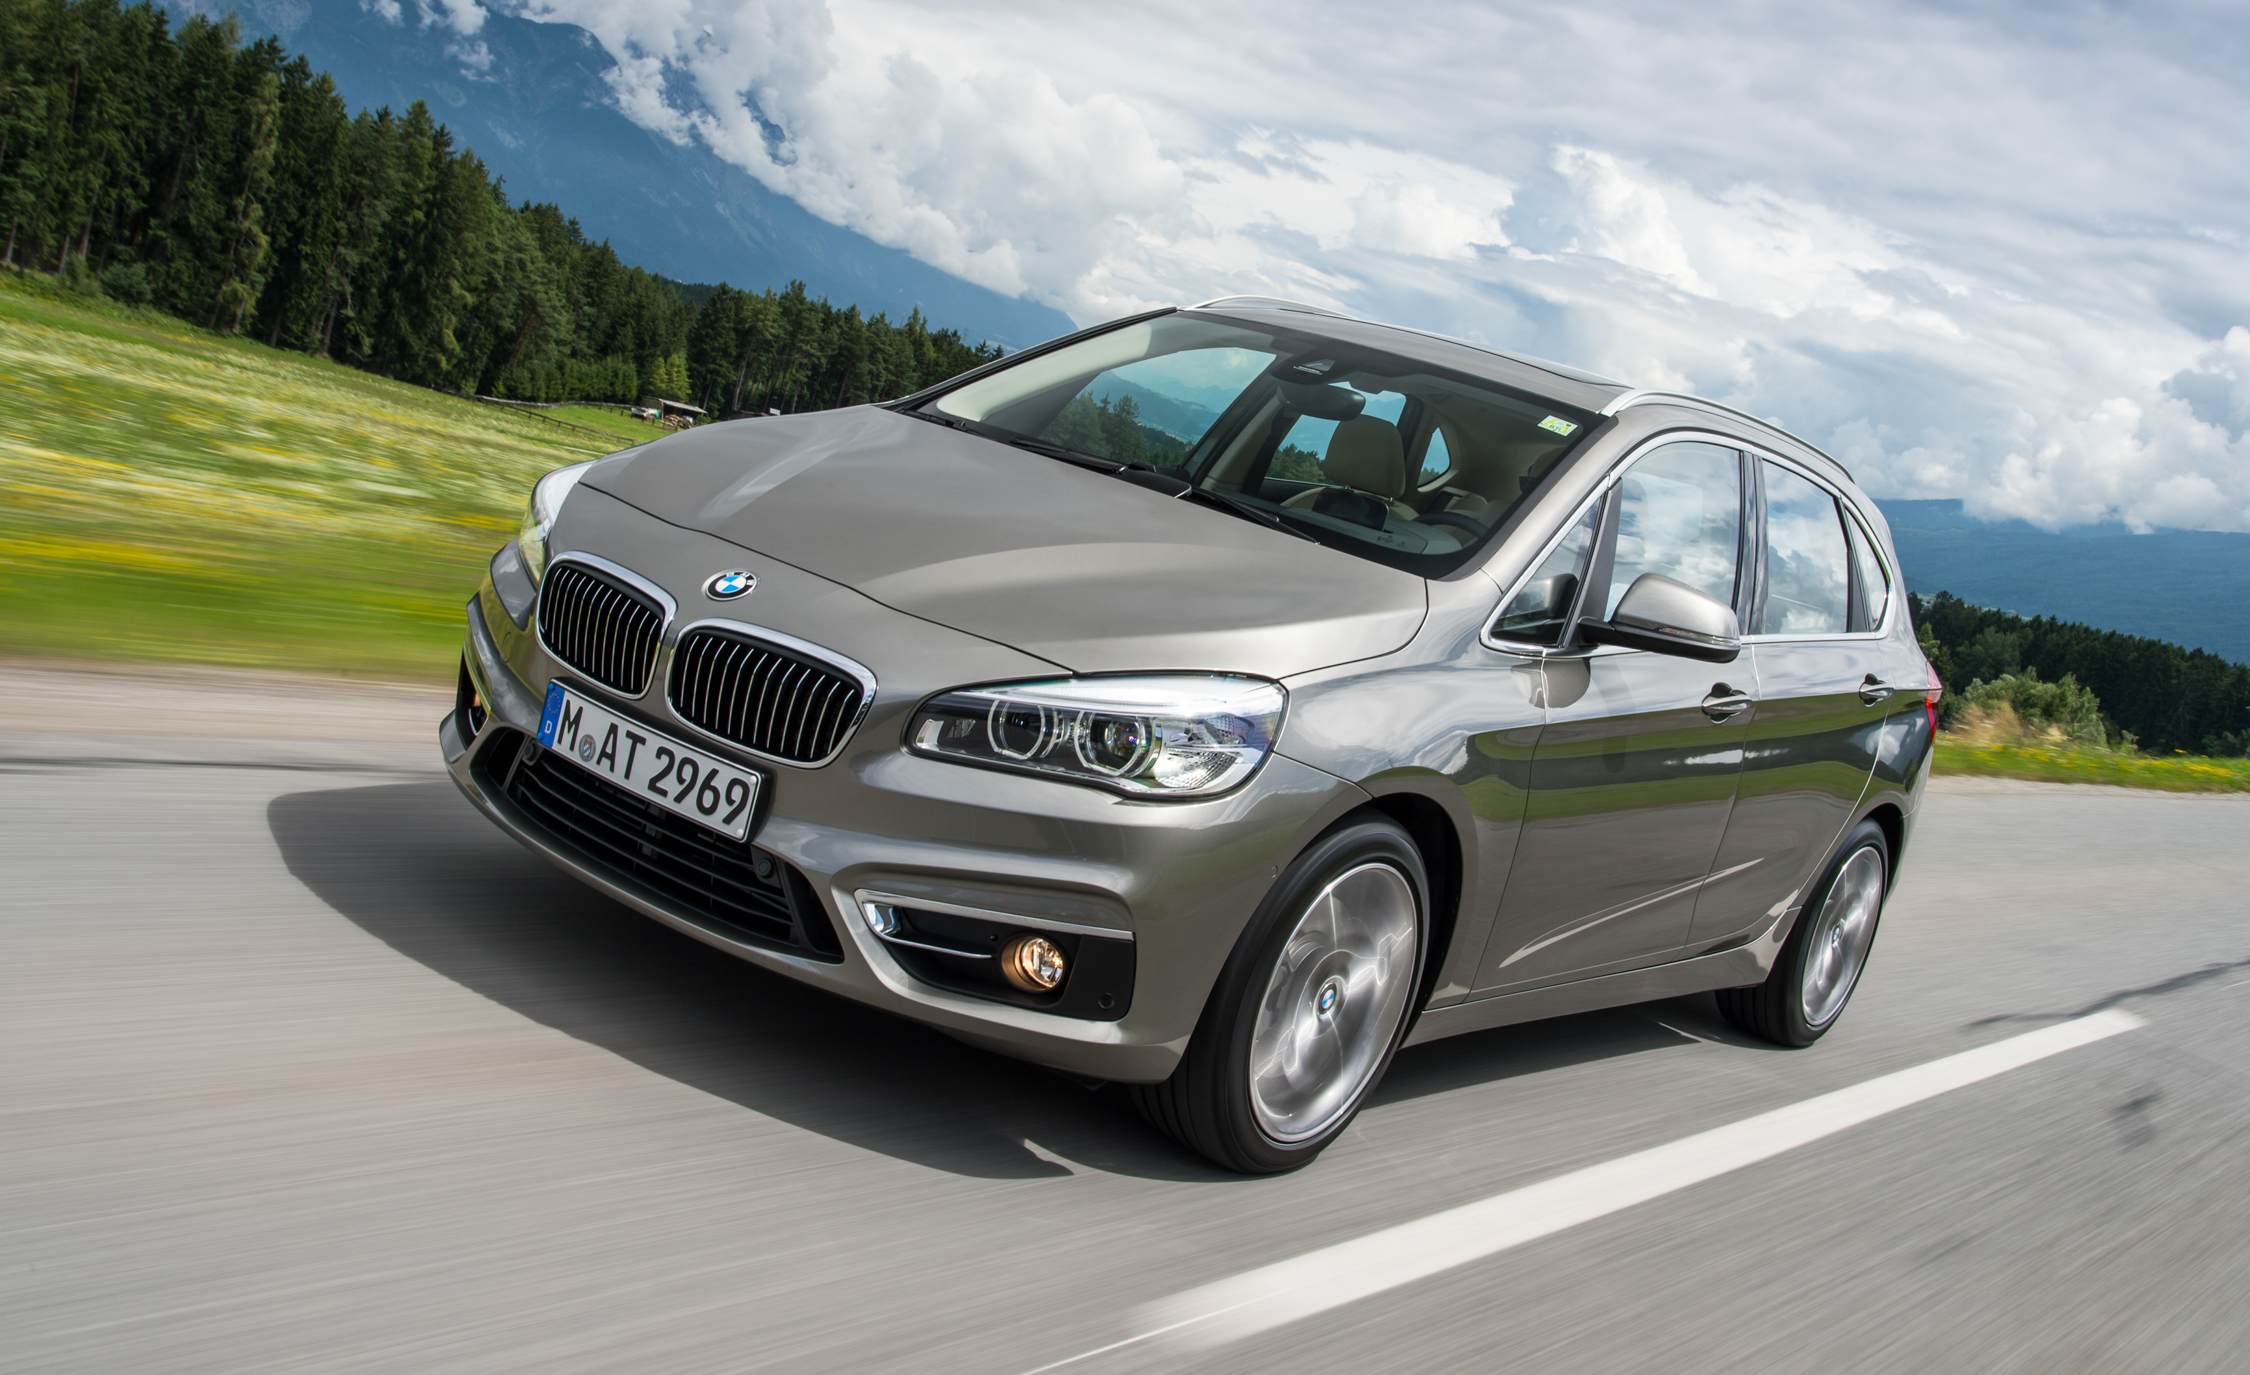 2015 BMW 225i Active Tourer (Euro Spec) (View 7 of 11)